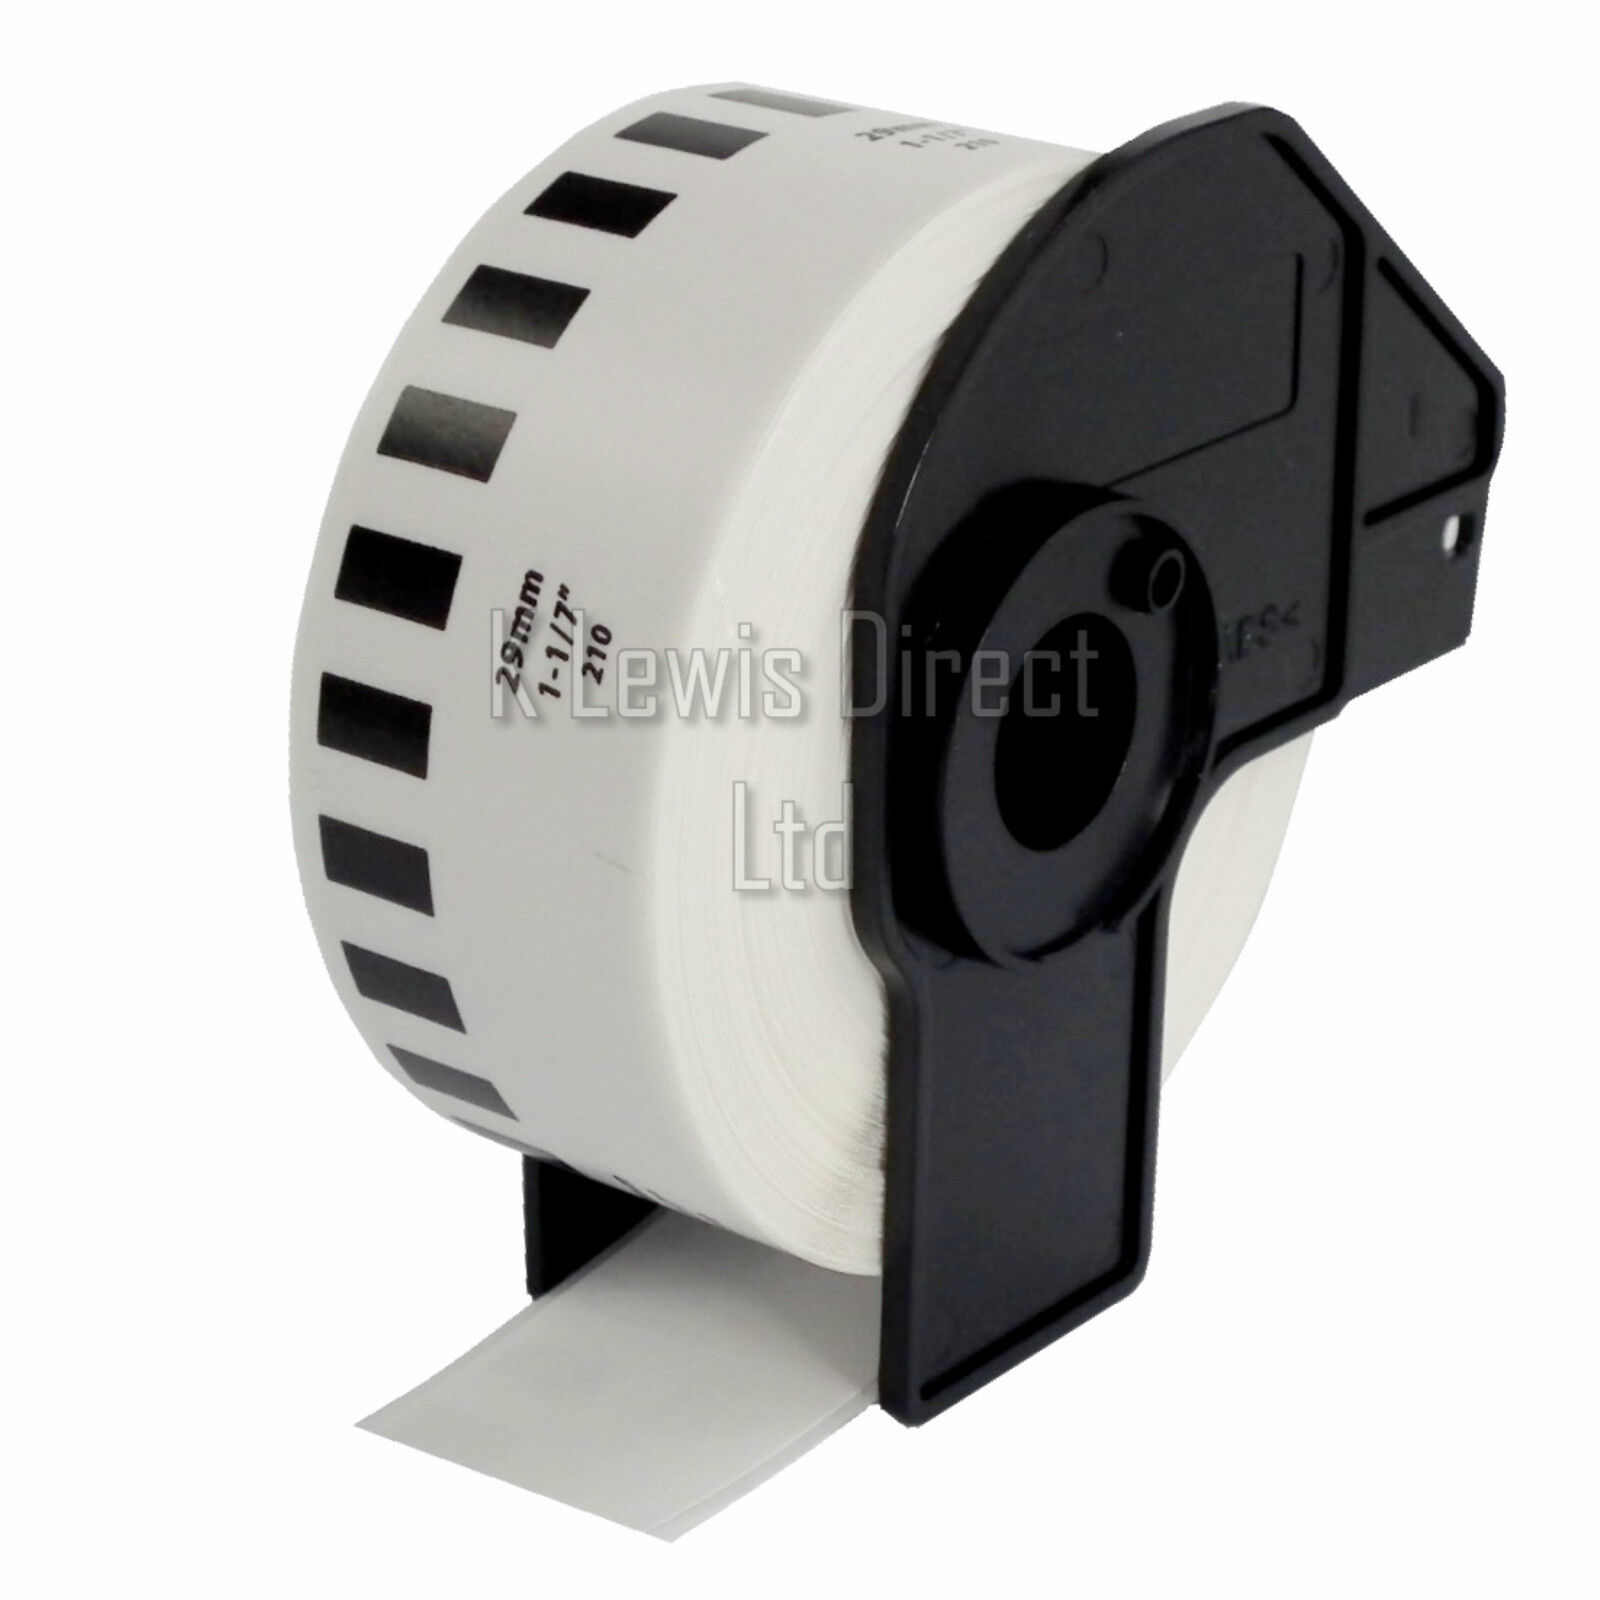 brother label printer templates - 5x brother compatible dk22205 printer labels 62mm roll